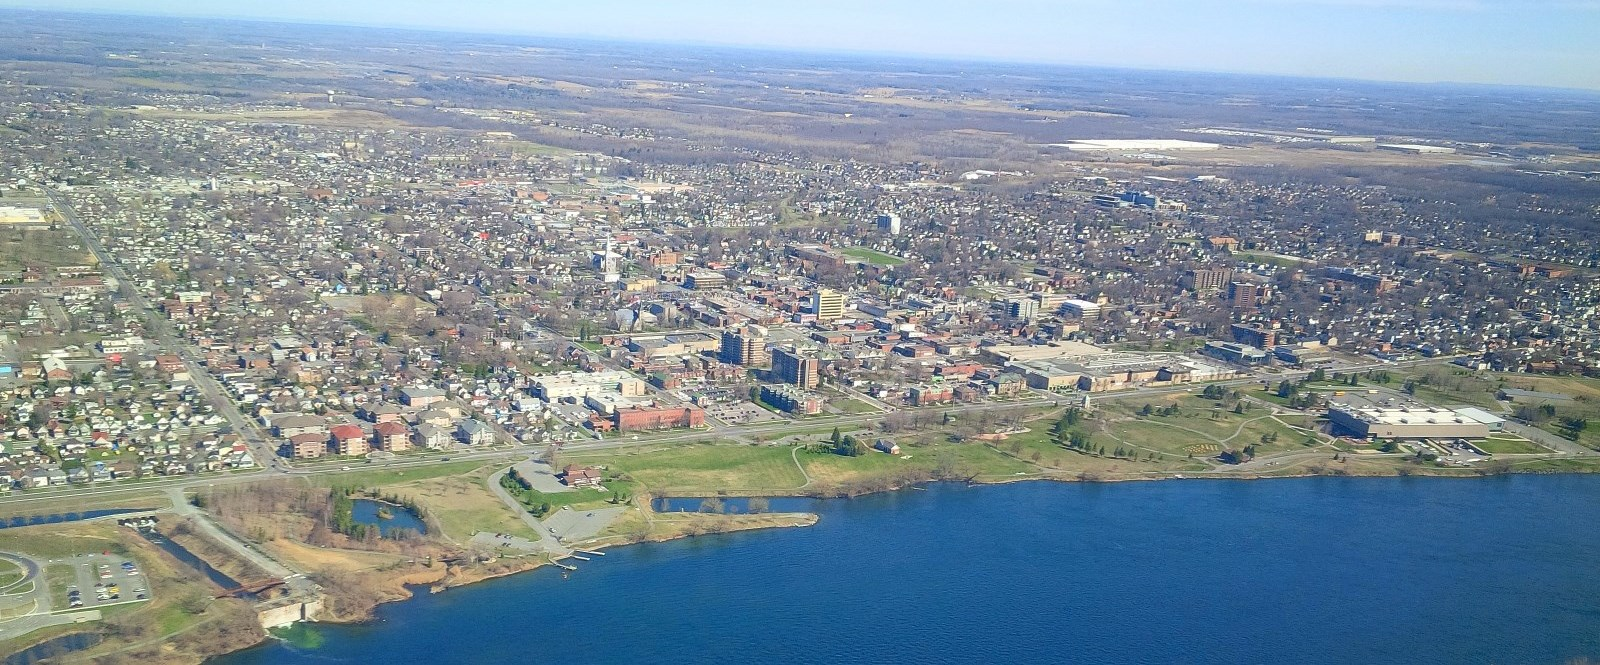 Cornwall Aerial view of City from above Saint Lawrence River